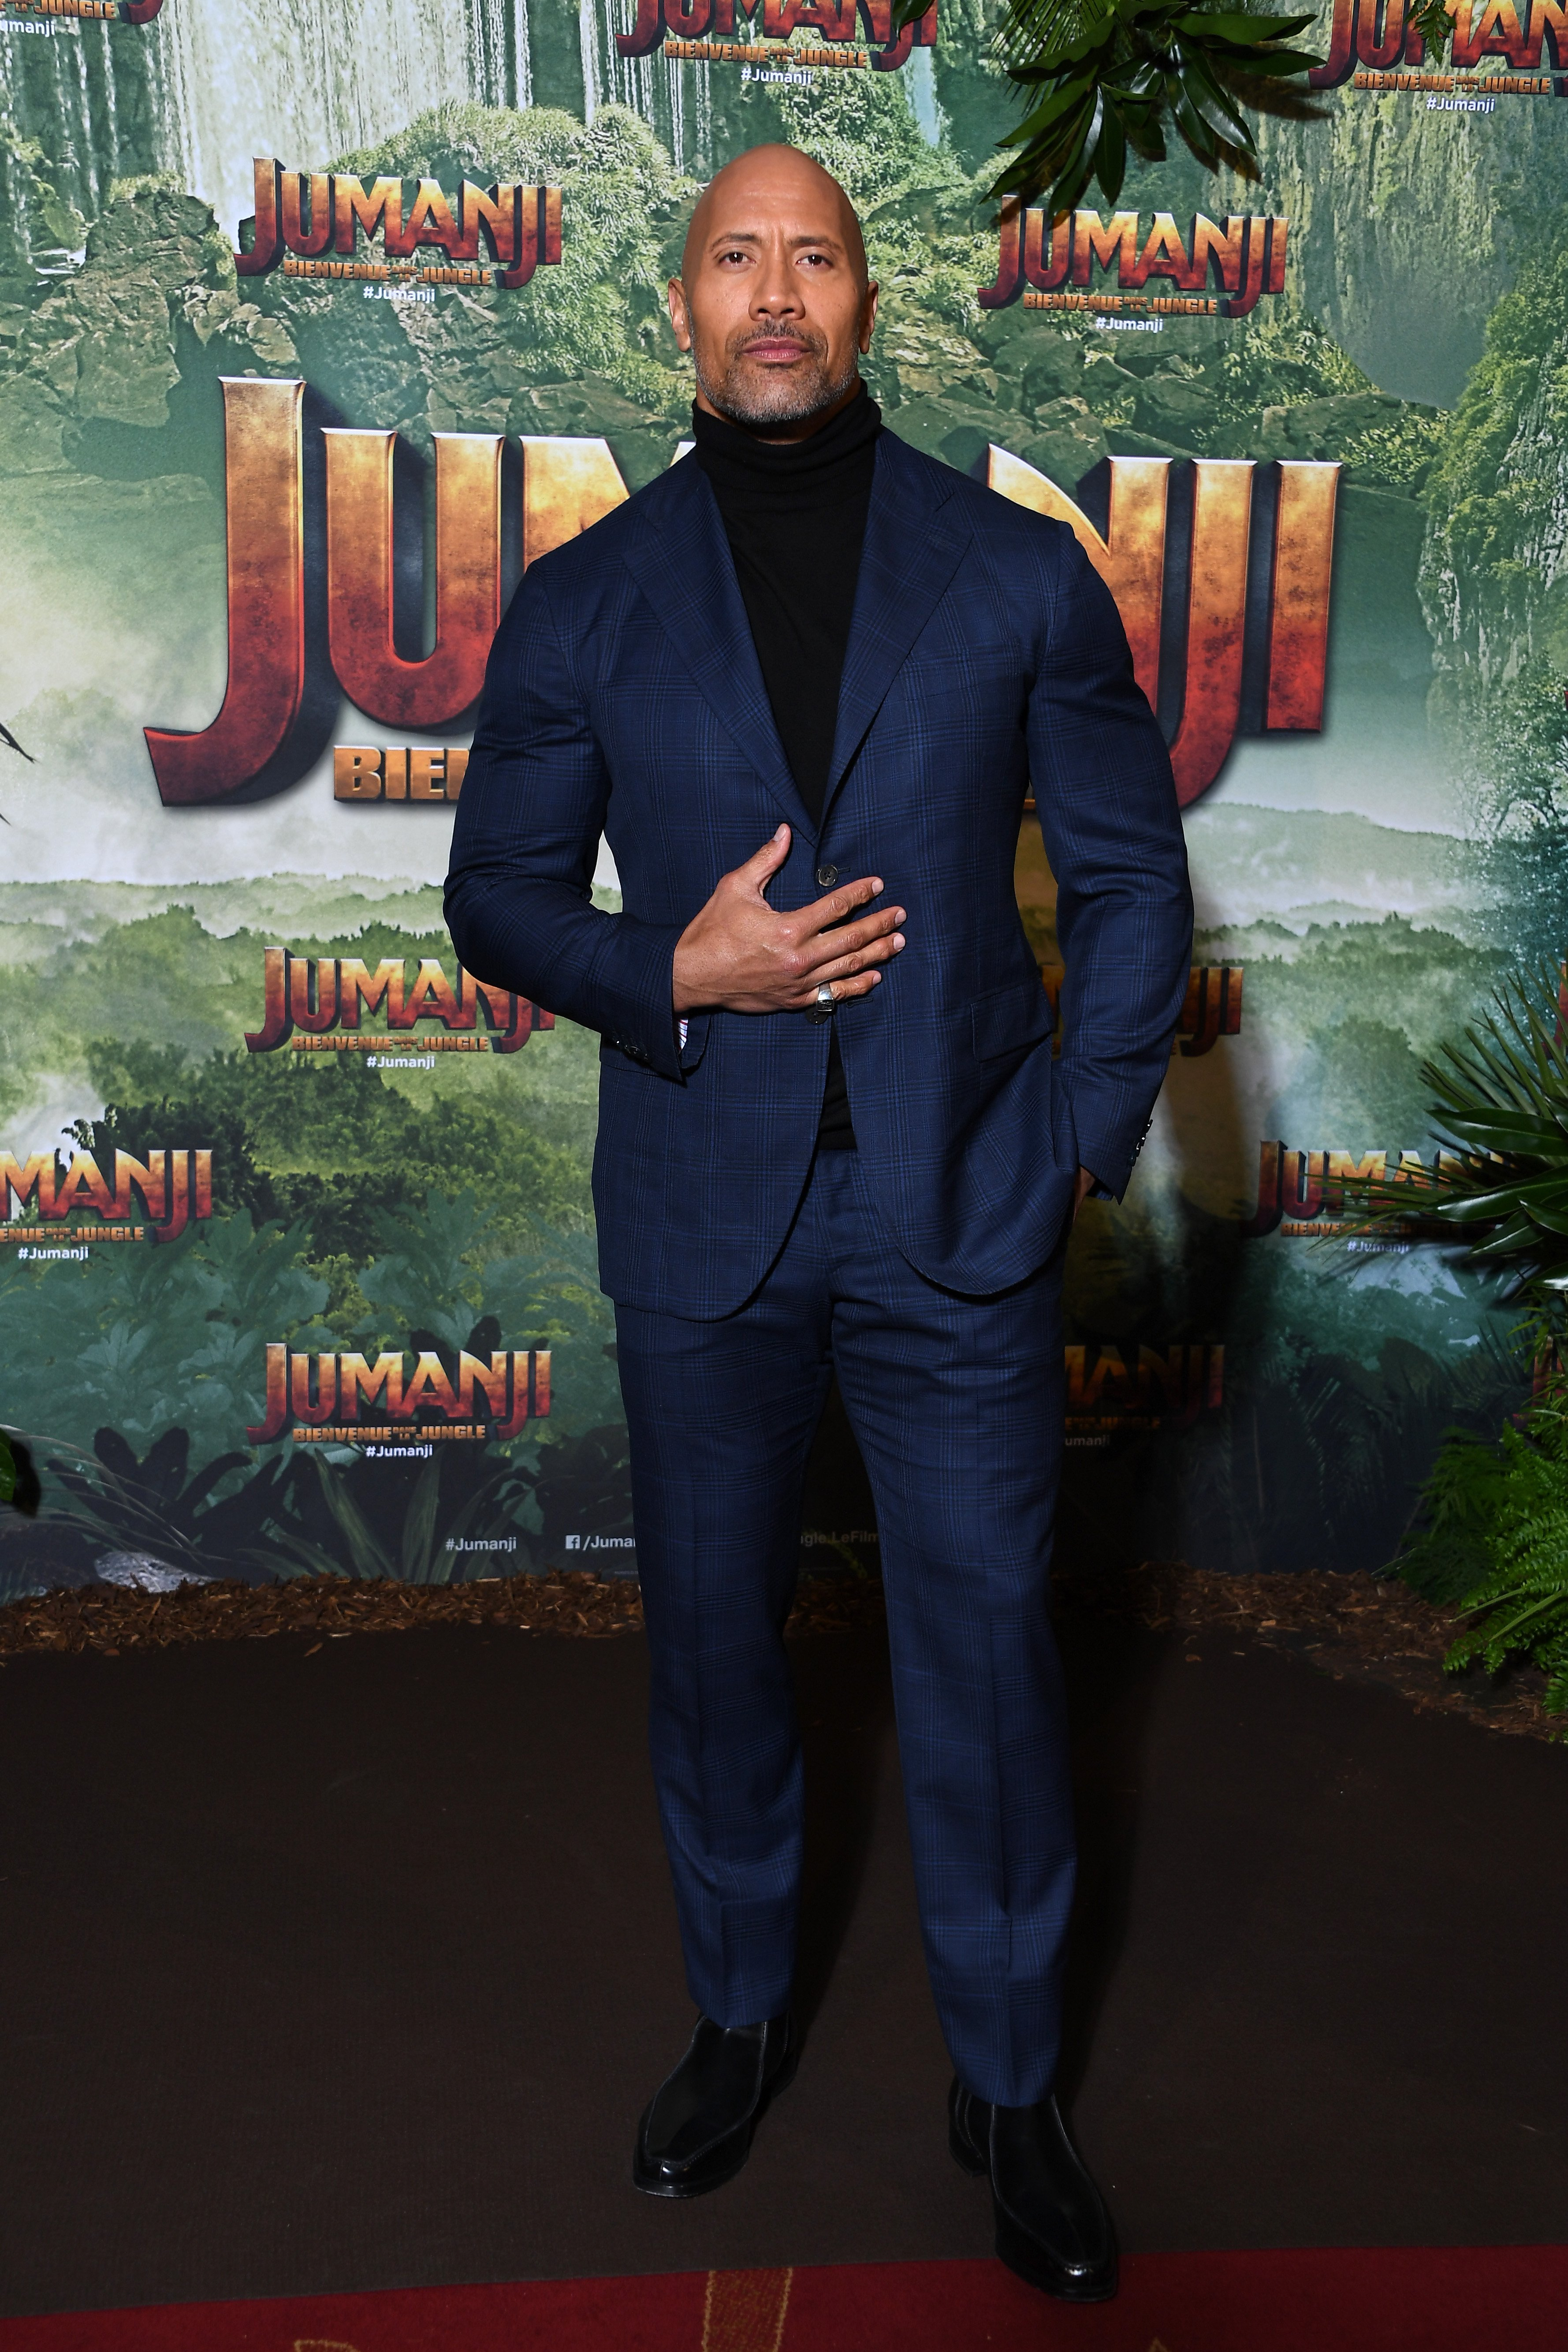 """Dwayne Johnson attends the premiere of """"Jumanji: Welcome to the Jungle"""" in Paris, France on December 5, 2017 